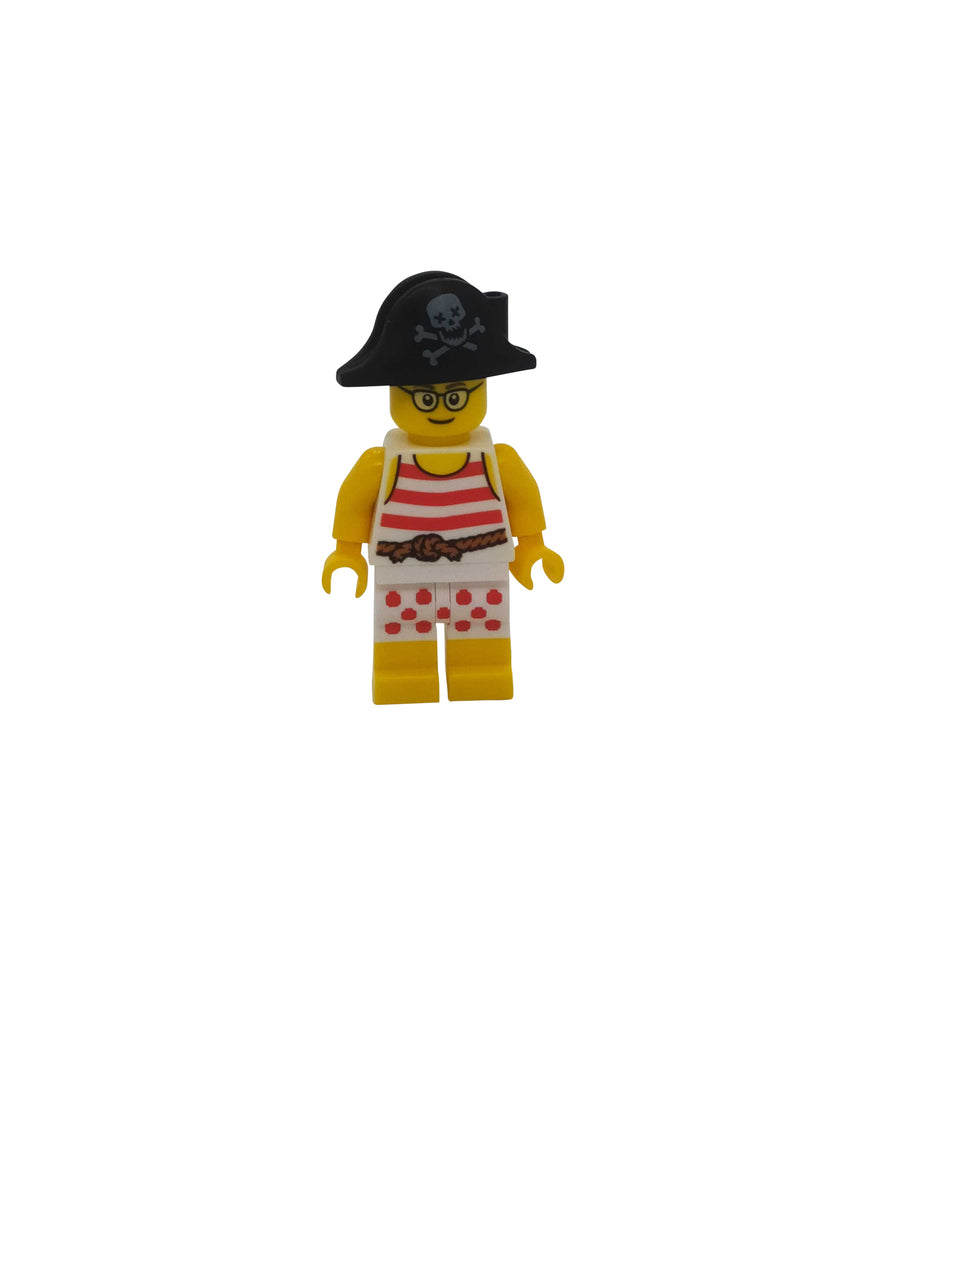 Pirate figure in underwear with a Lego hat